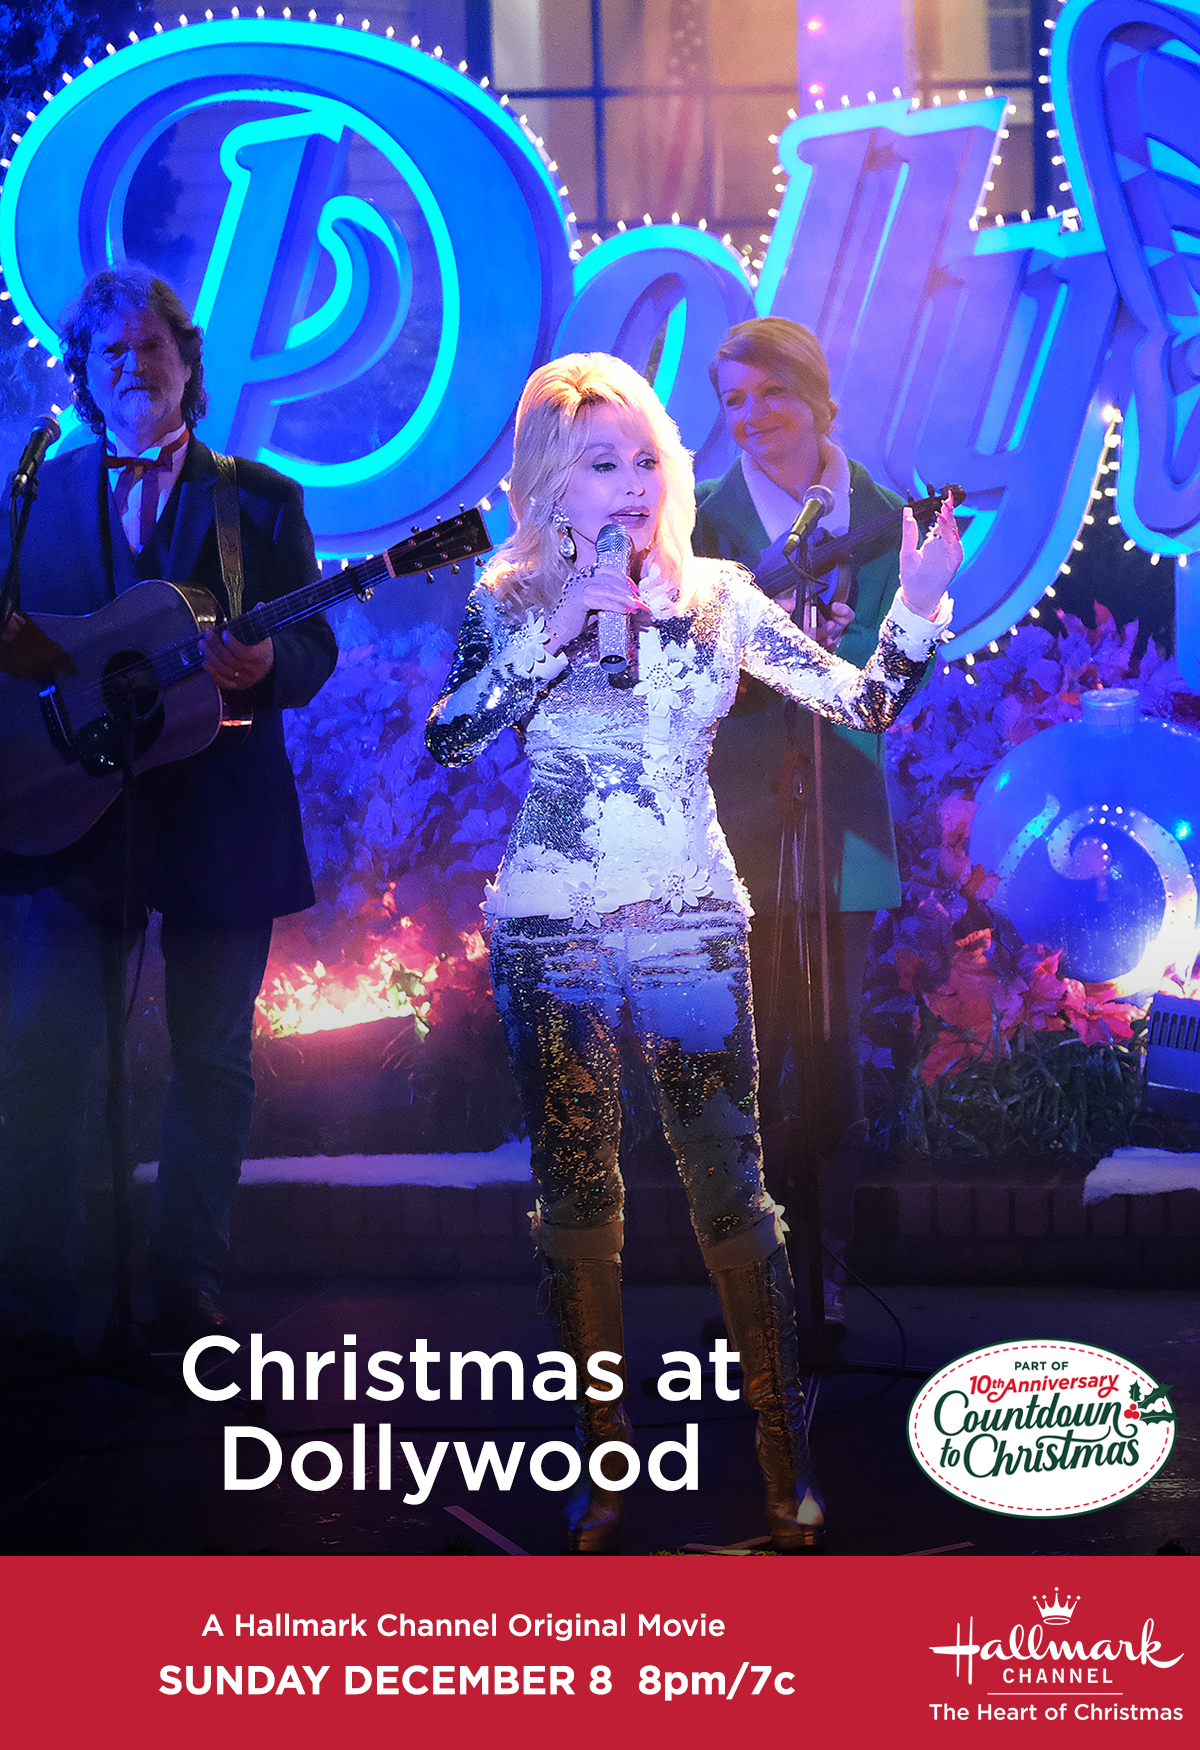 A Christmas To Remember 2020 Dolly Parton makes this a Christmas to remember with an incredible